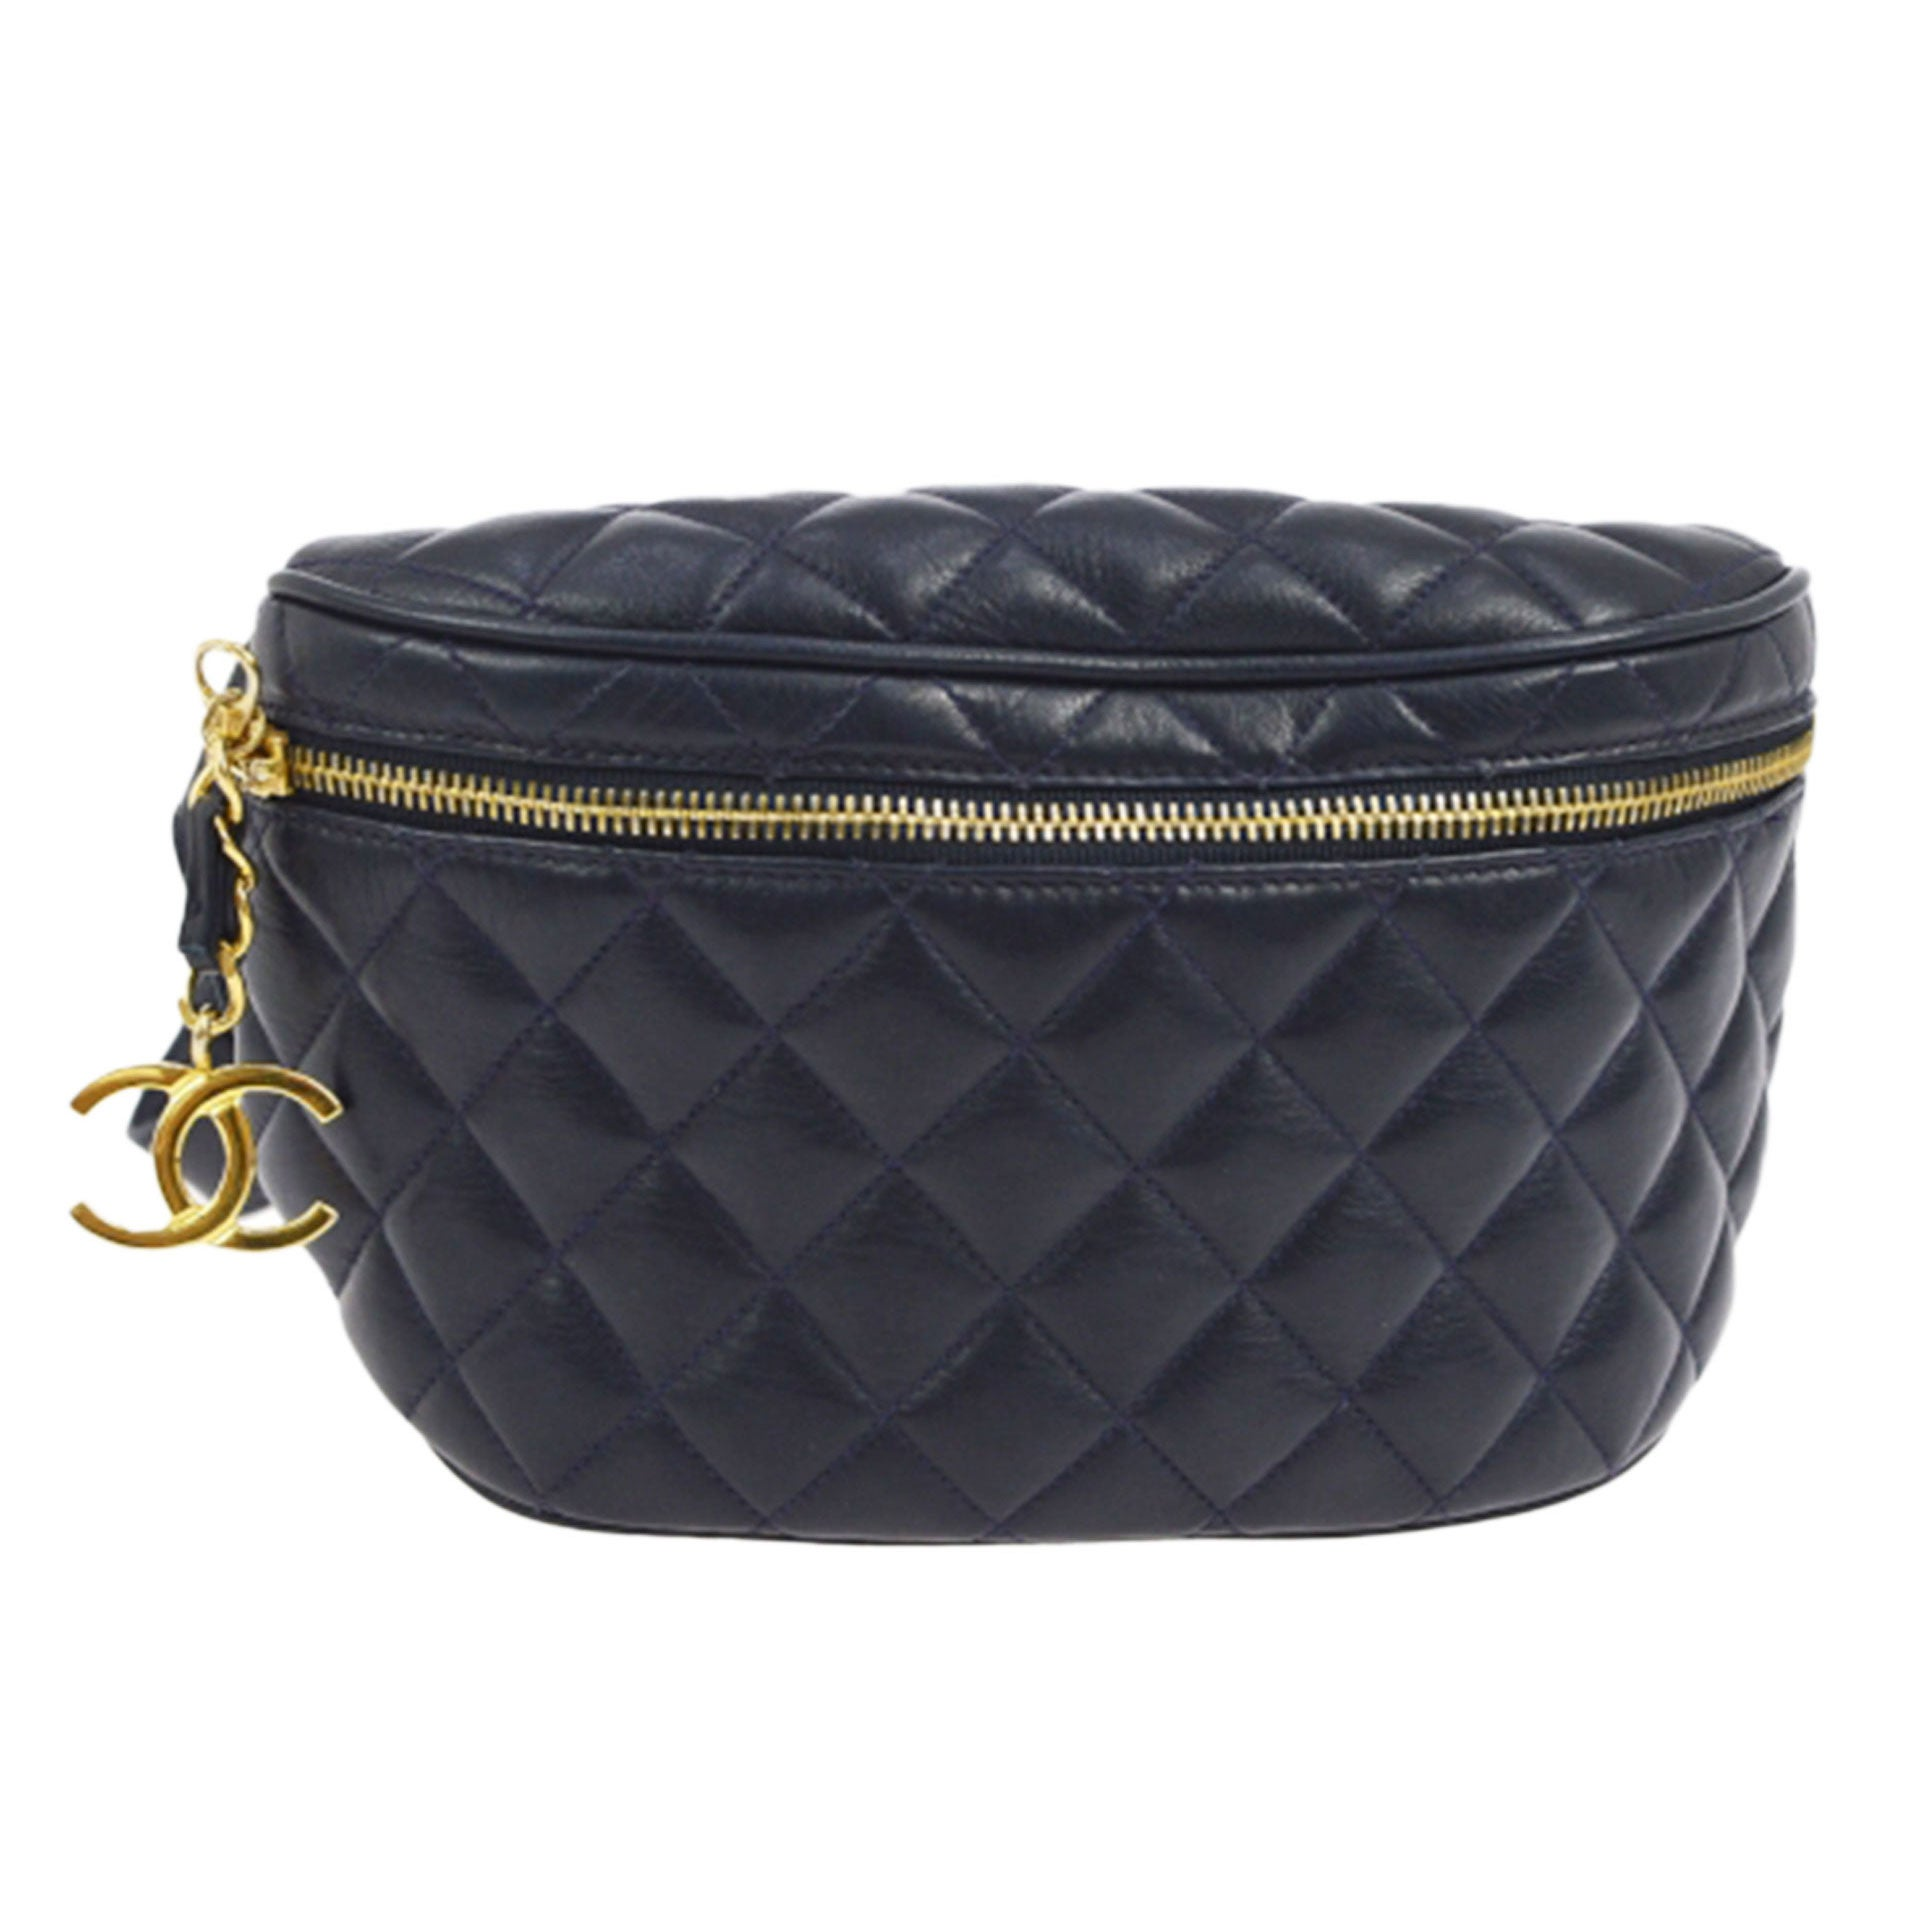 d6db0c23d Chanel Quilted Lambskin Vintage Fanny Pack Waist Belt Bum Bag, 1990s For  Sale at 1stdibs